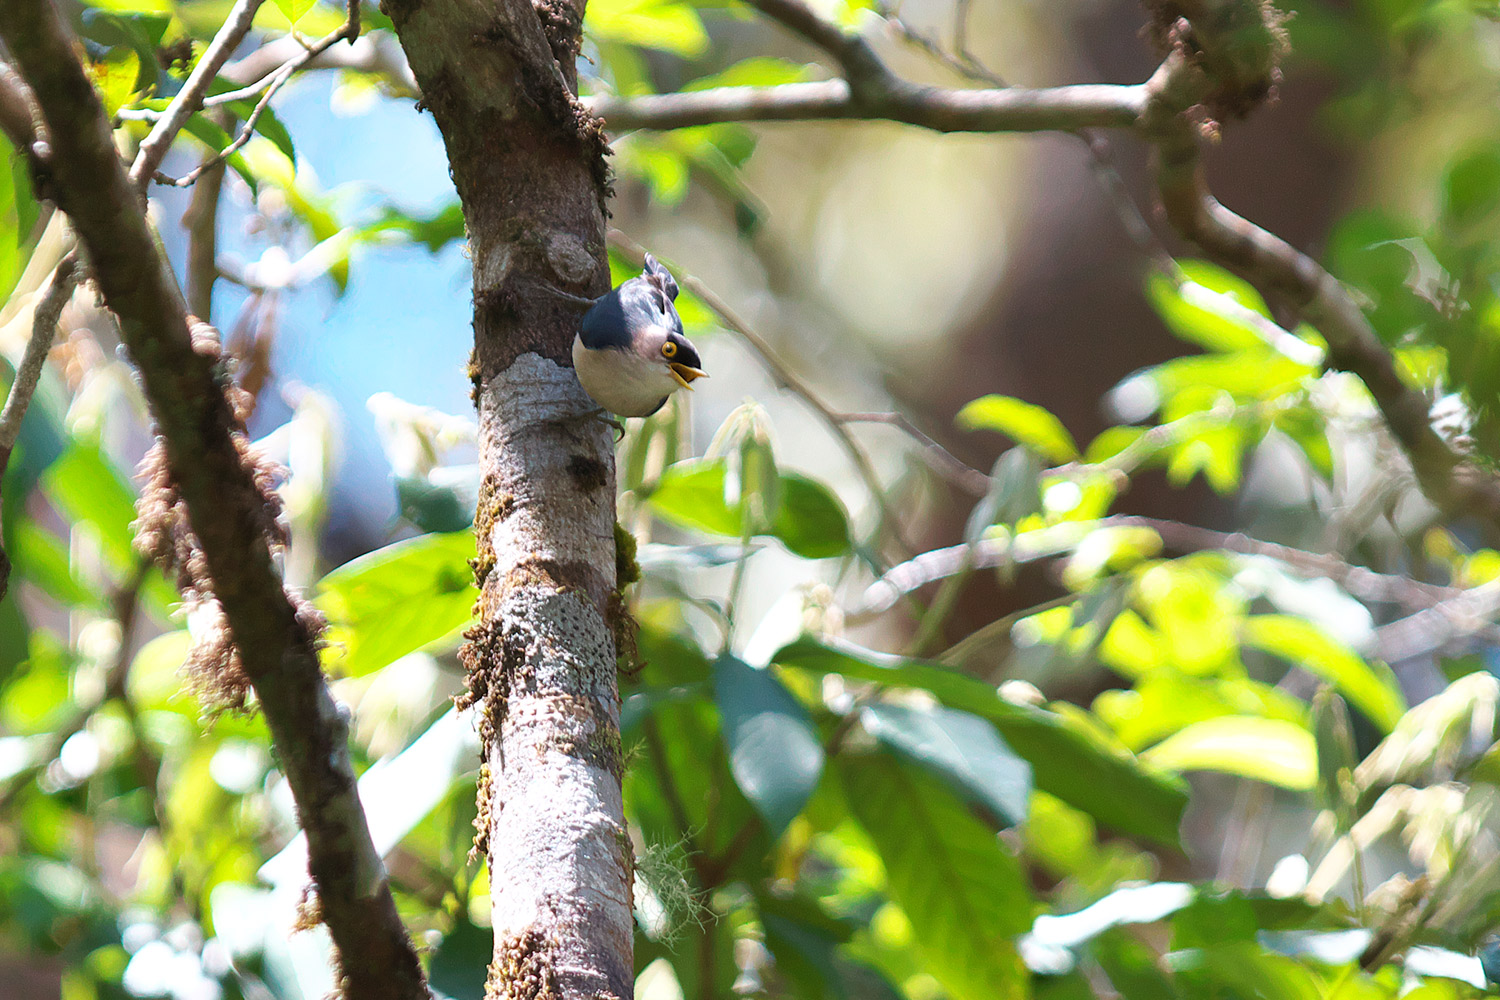 キバシゴジュウカラ Yellow-billed Nuthatch_d0013455_1632639.jpg